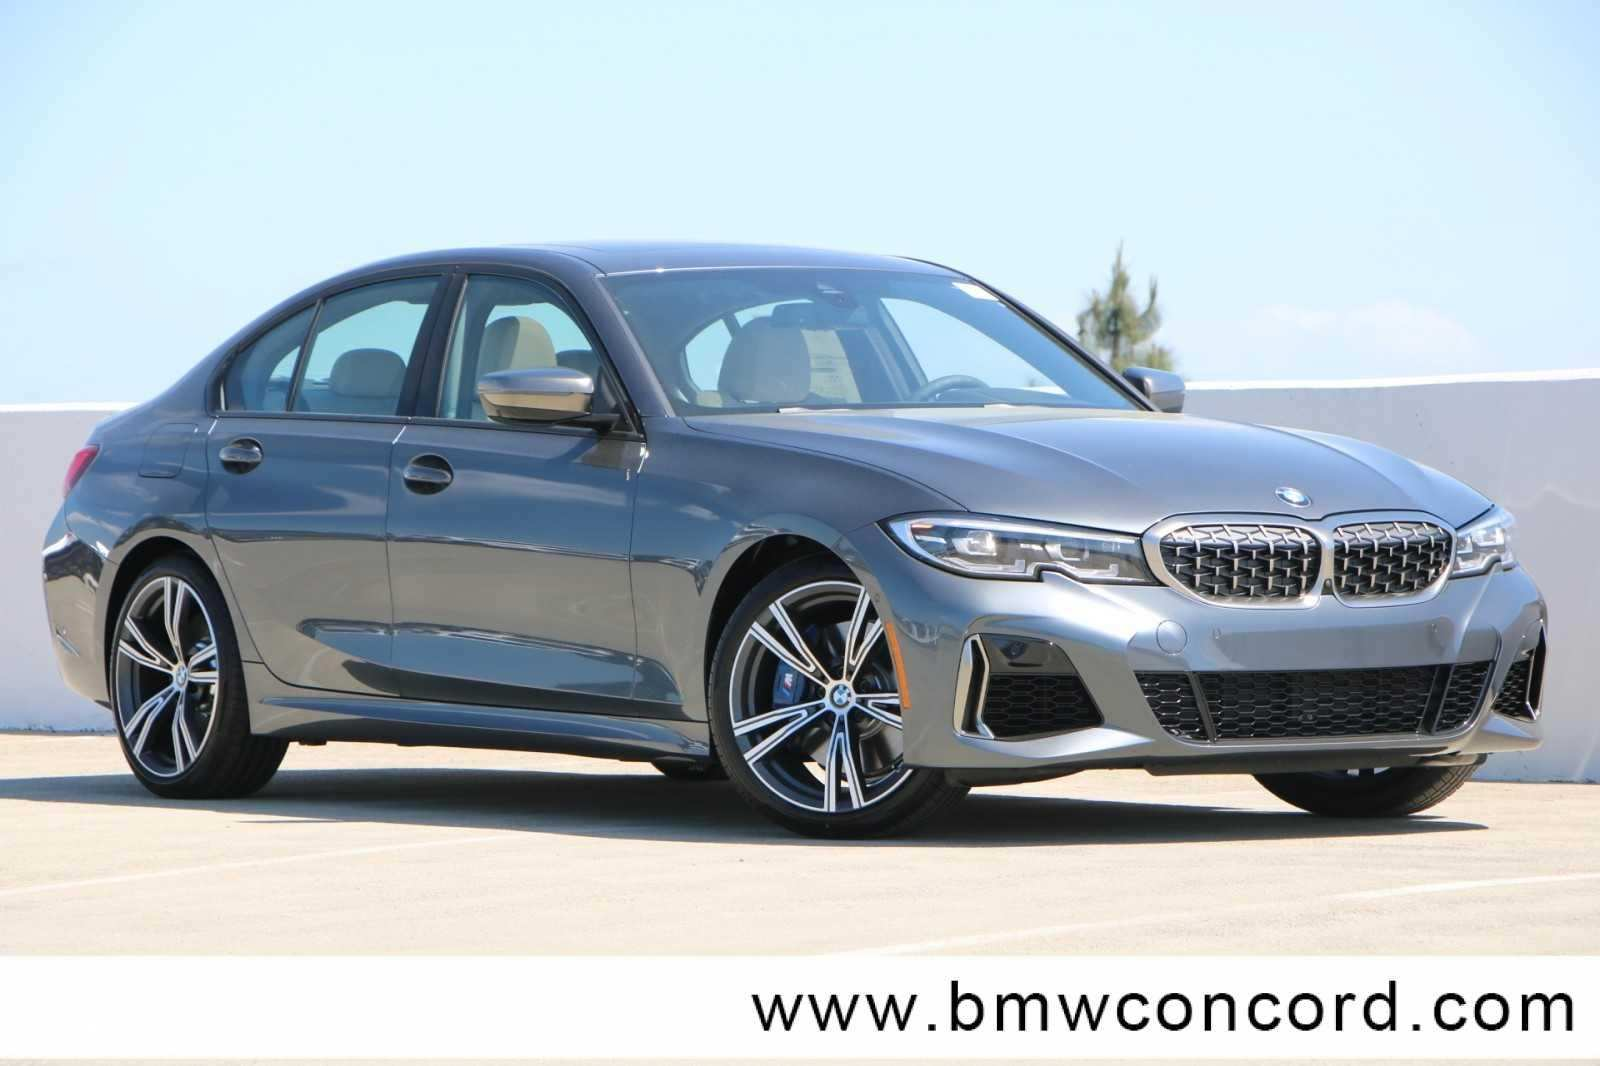 67 New Bmw New 3 Series 2020 Images